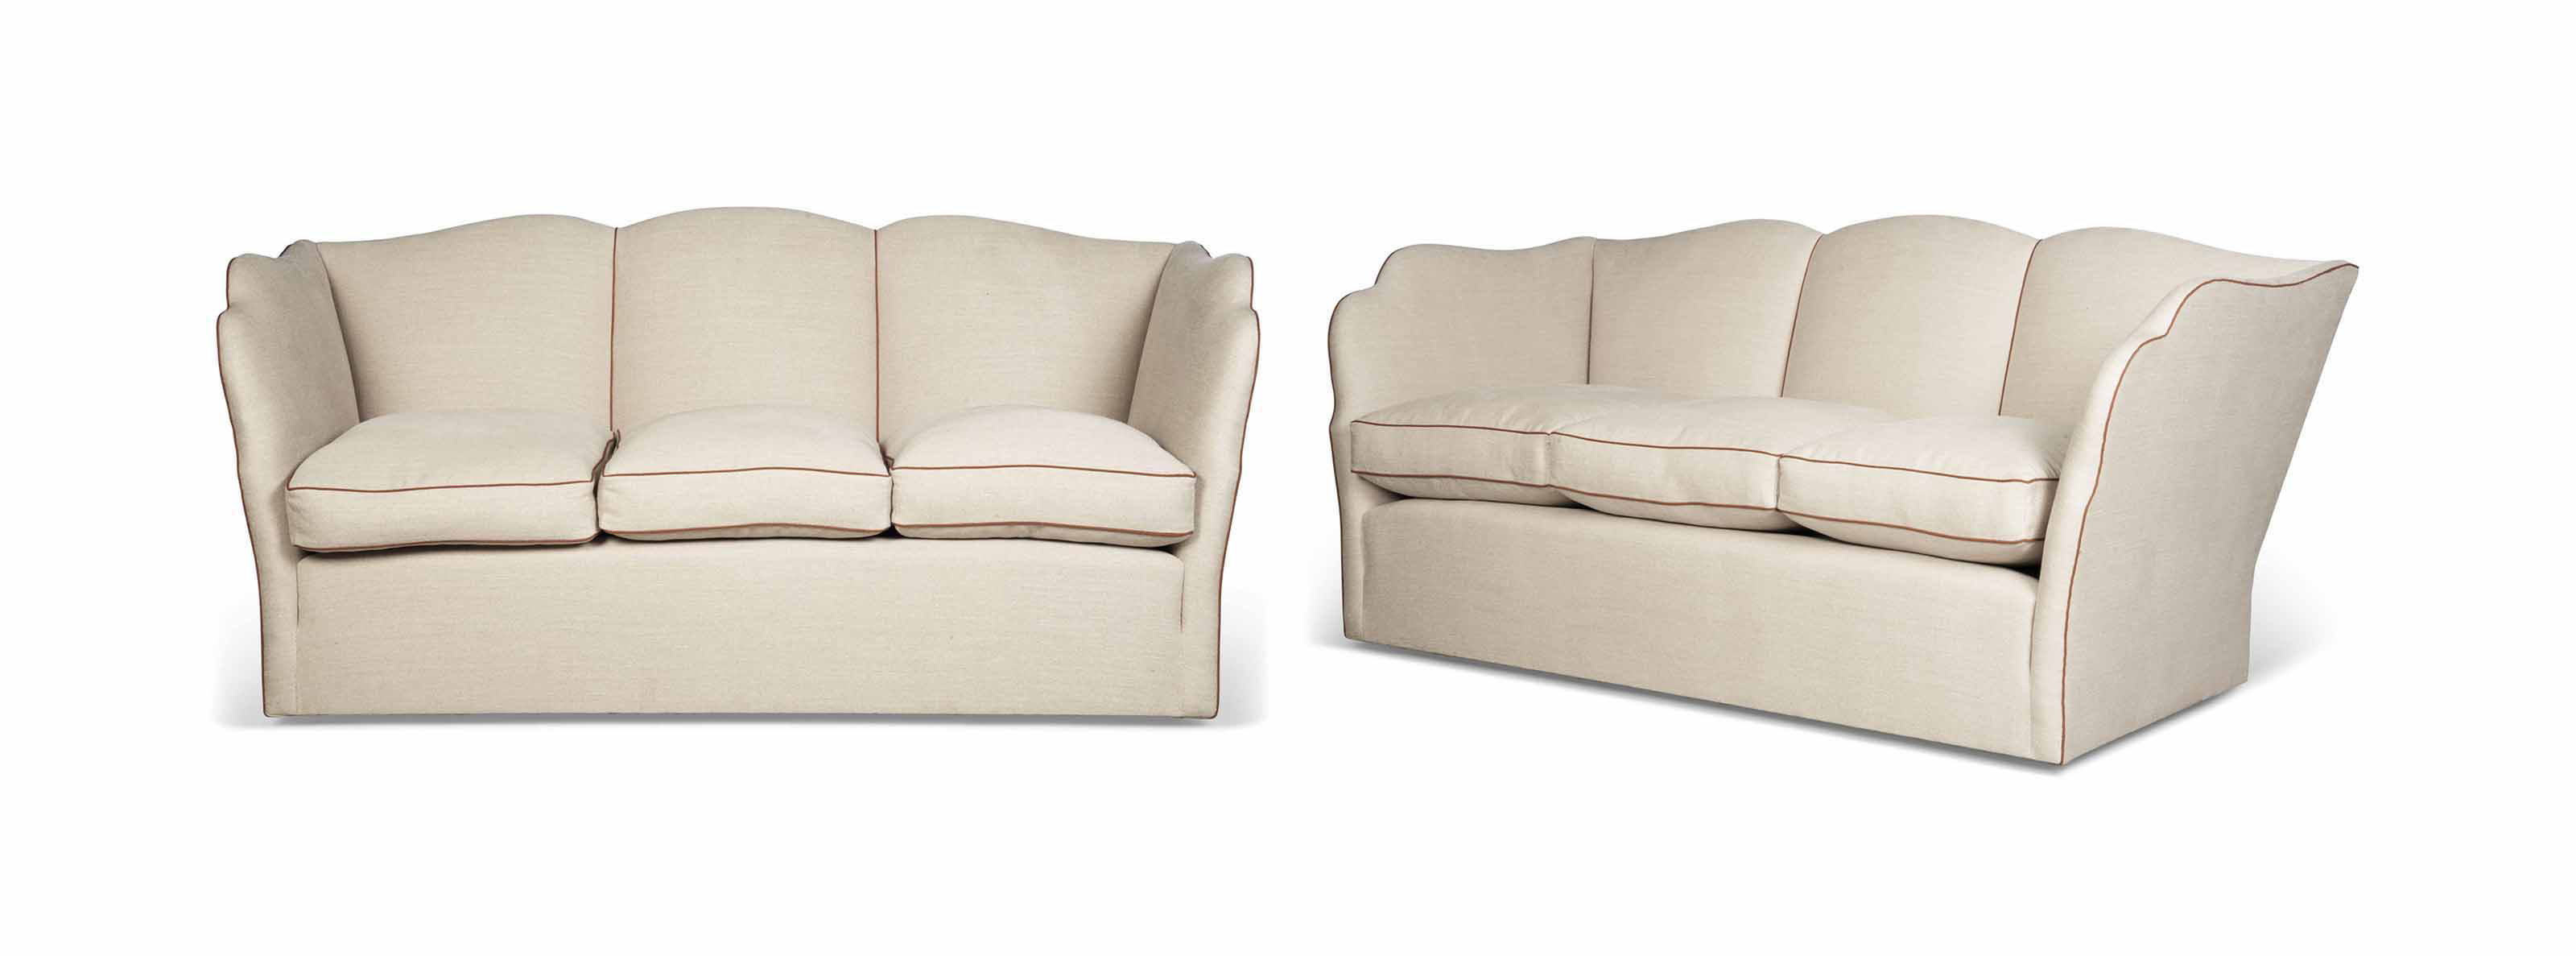 A Pair Of 1930s Style Sofas By